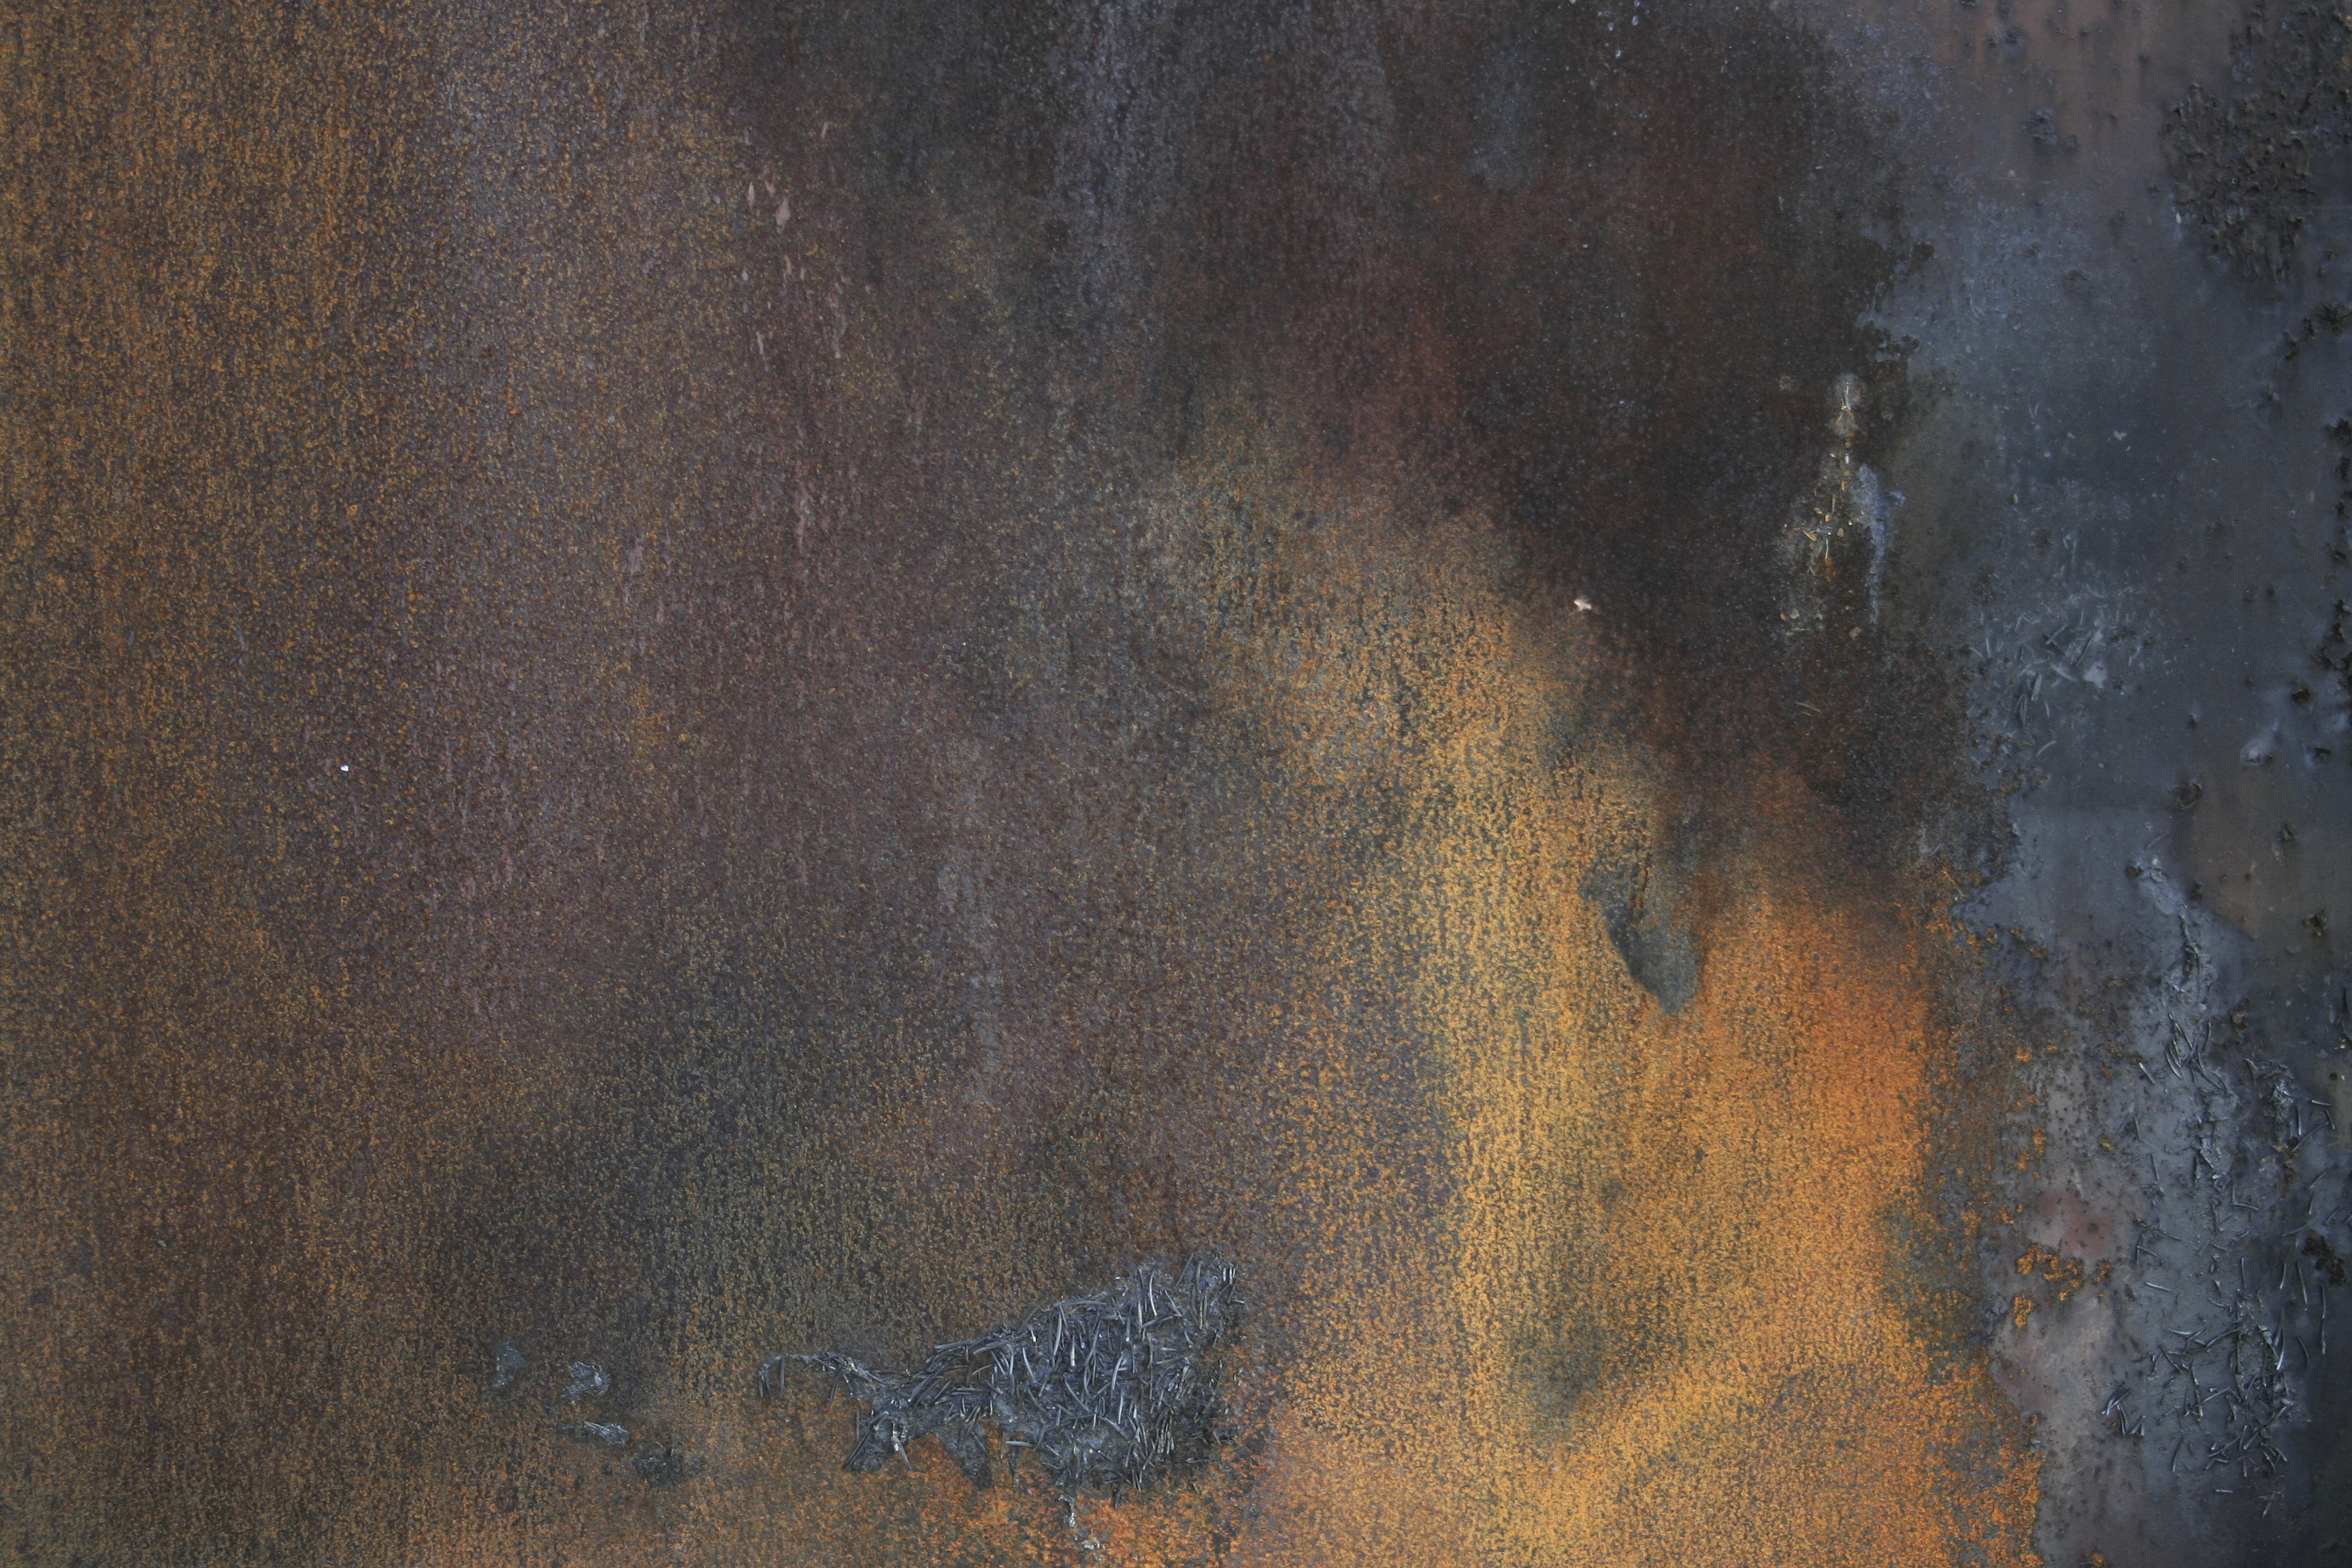 Rusty metal texture with soot | Textures for photoshop free